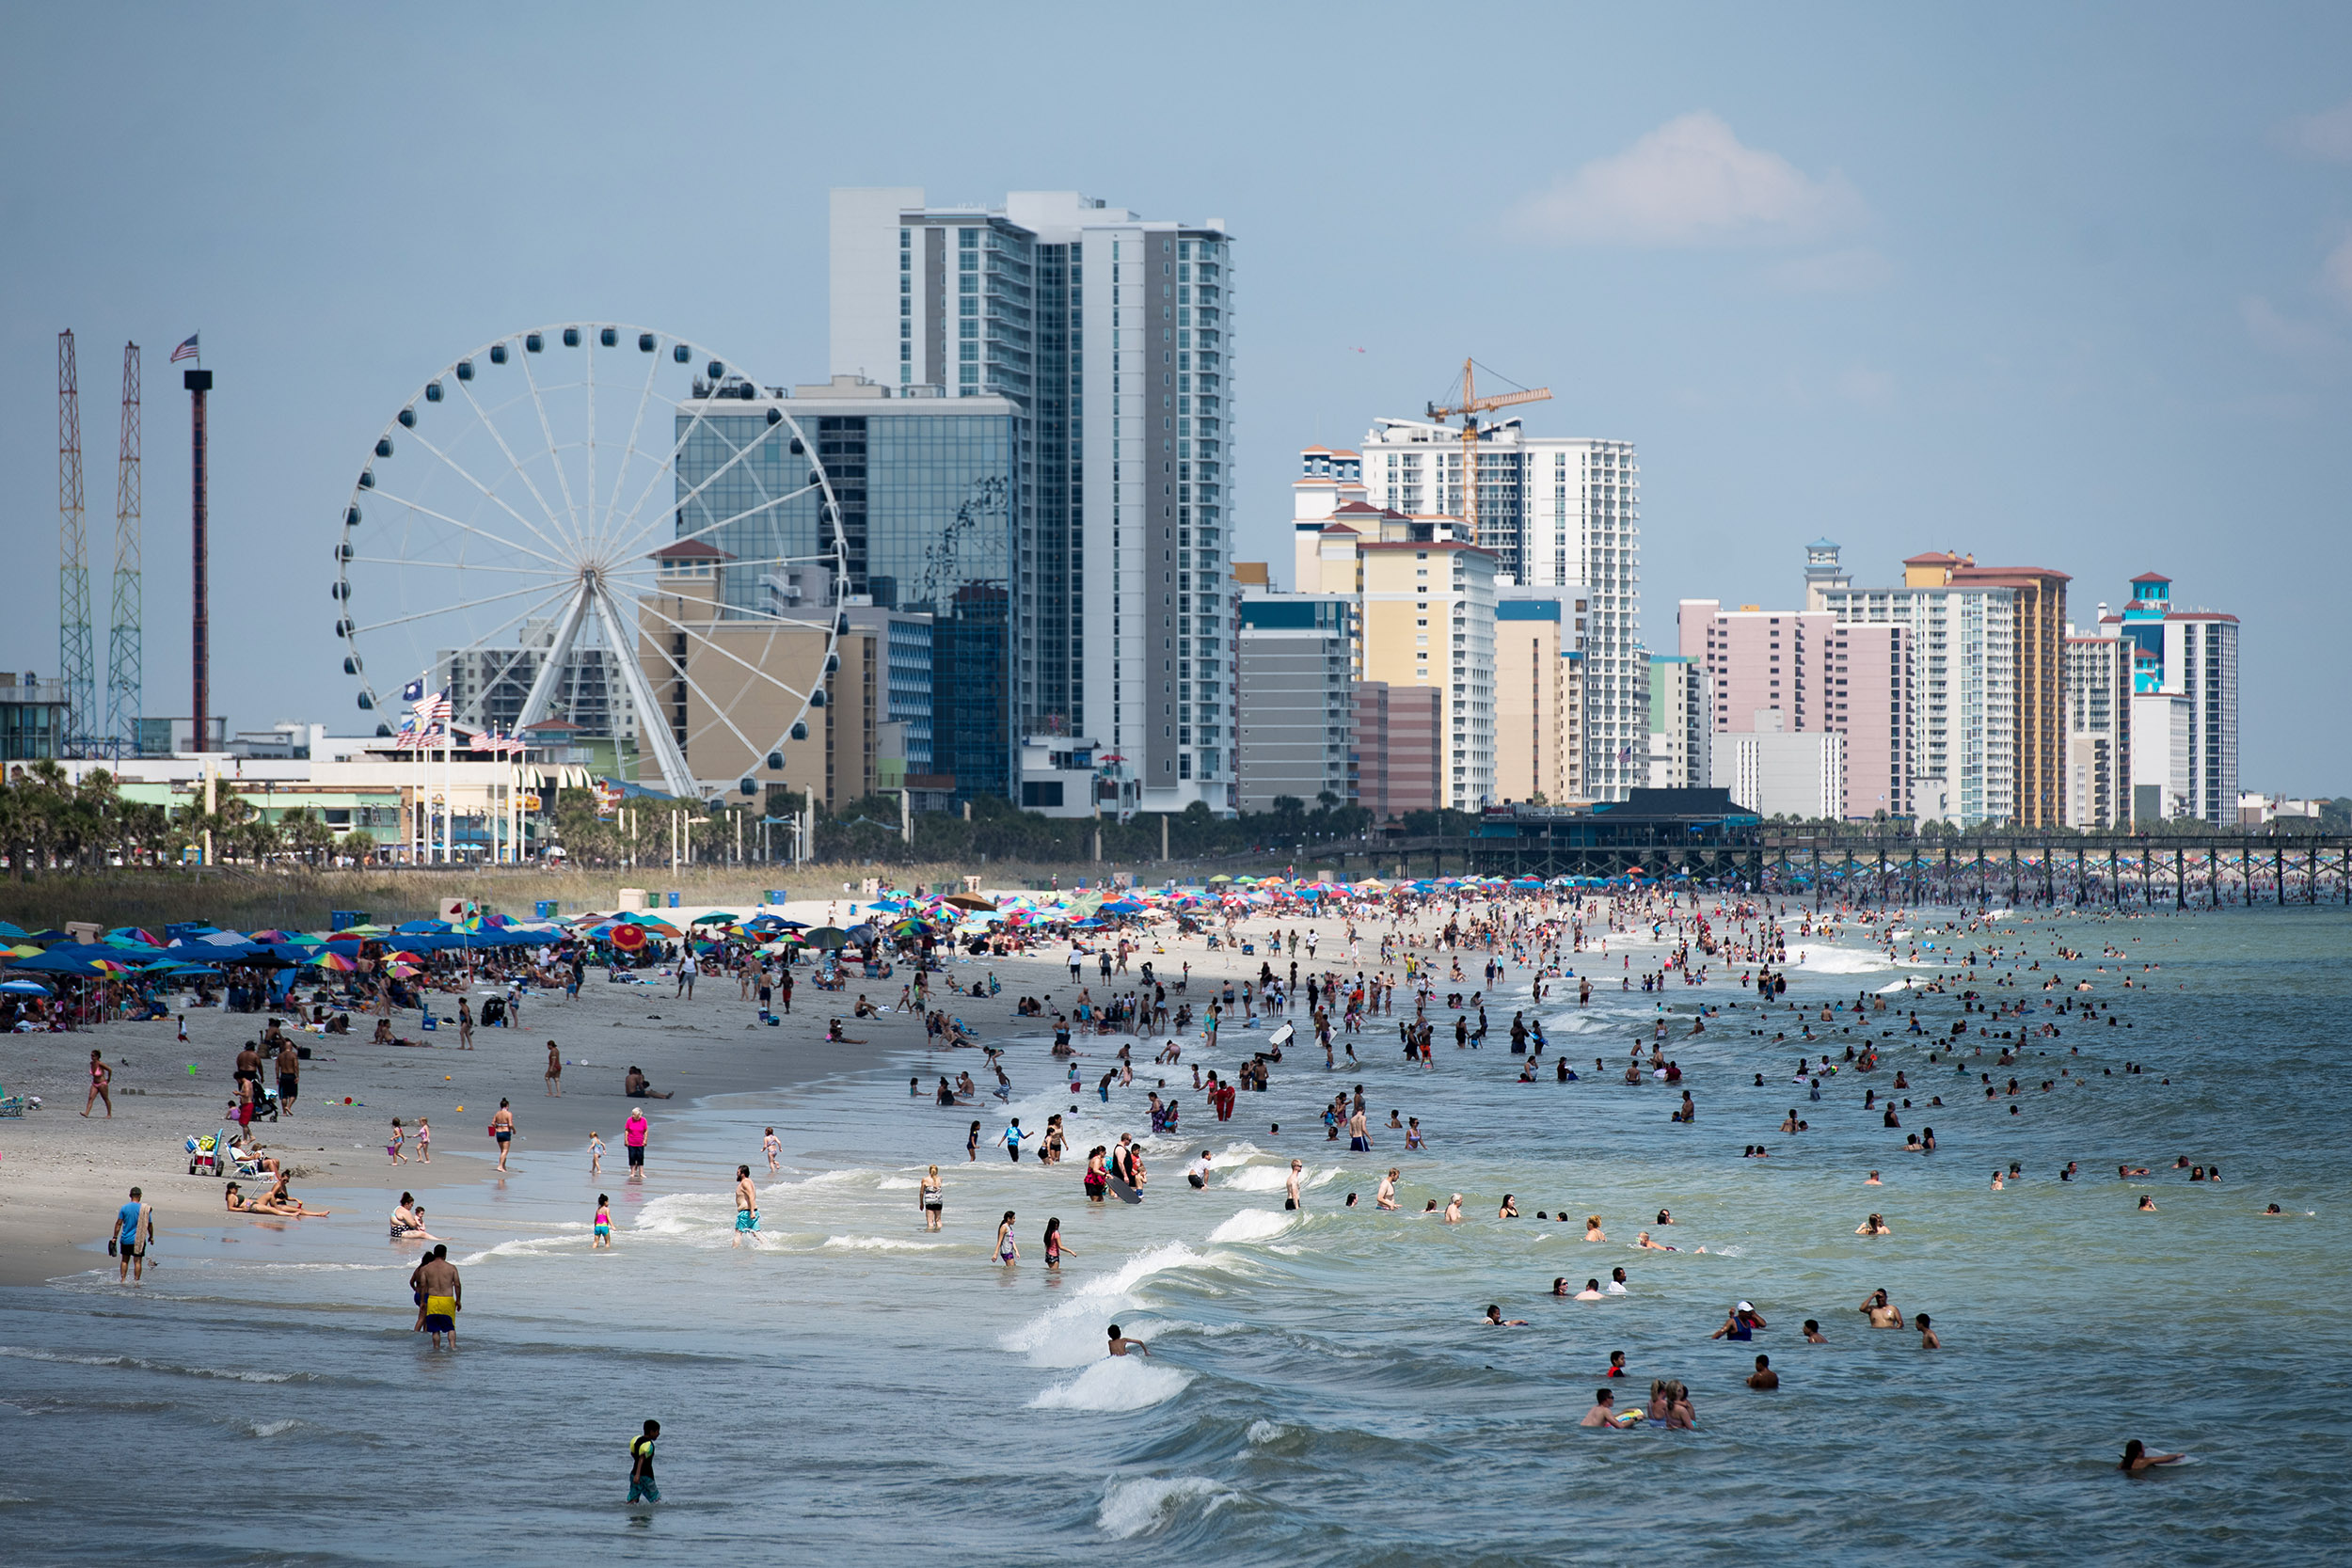 People enjoy the beach on September 5, in Myrtle Beach, South Carolina.